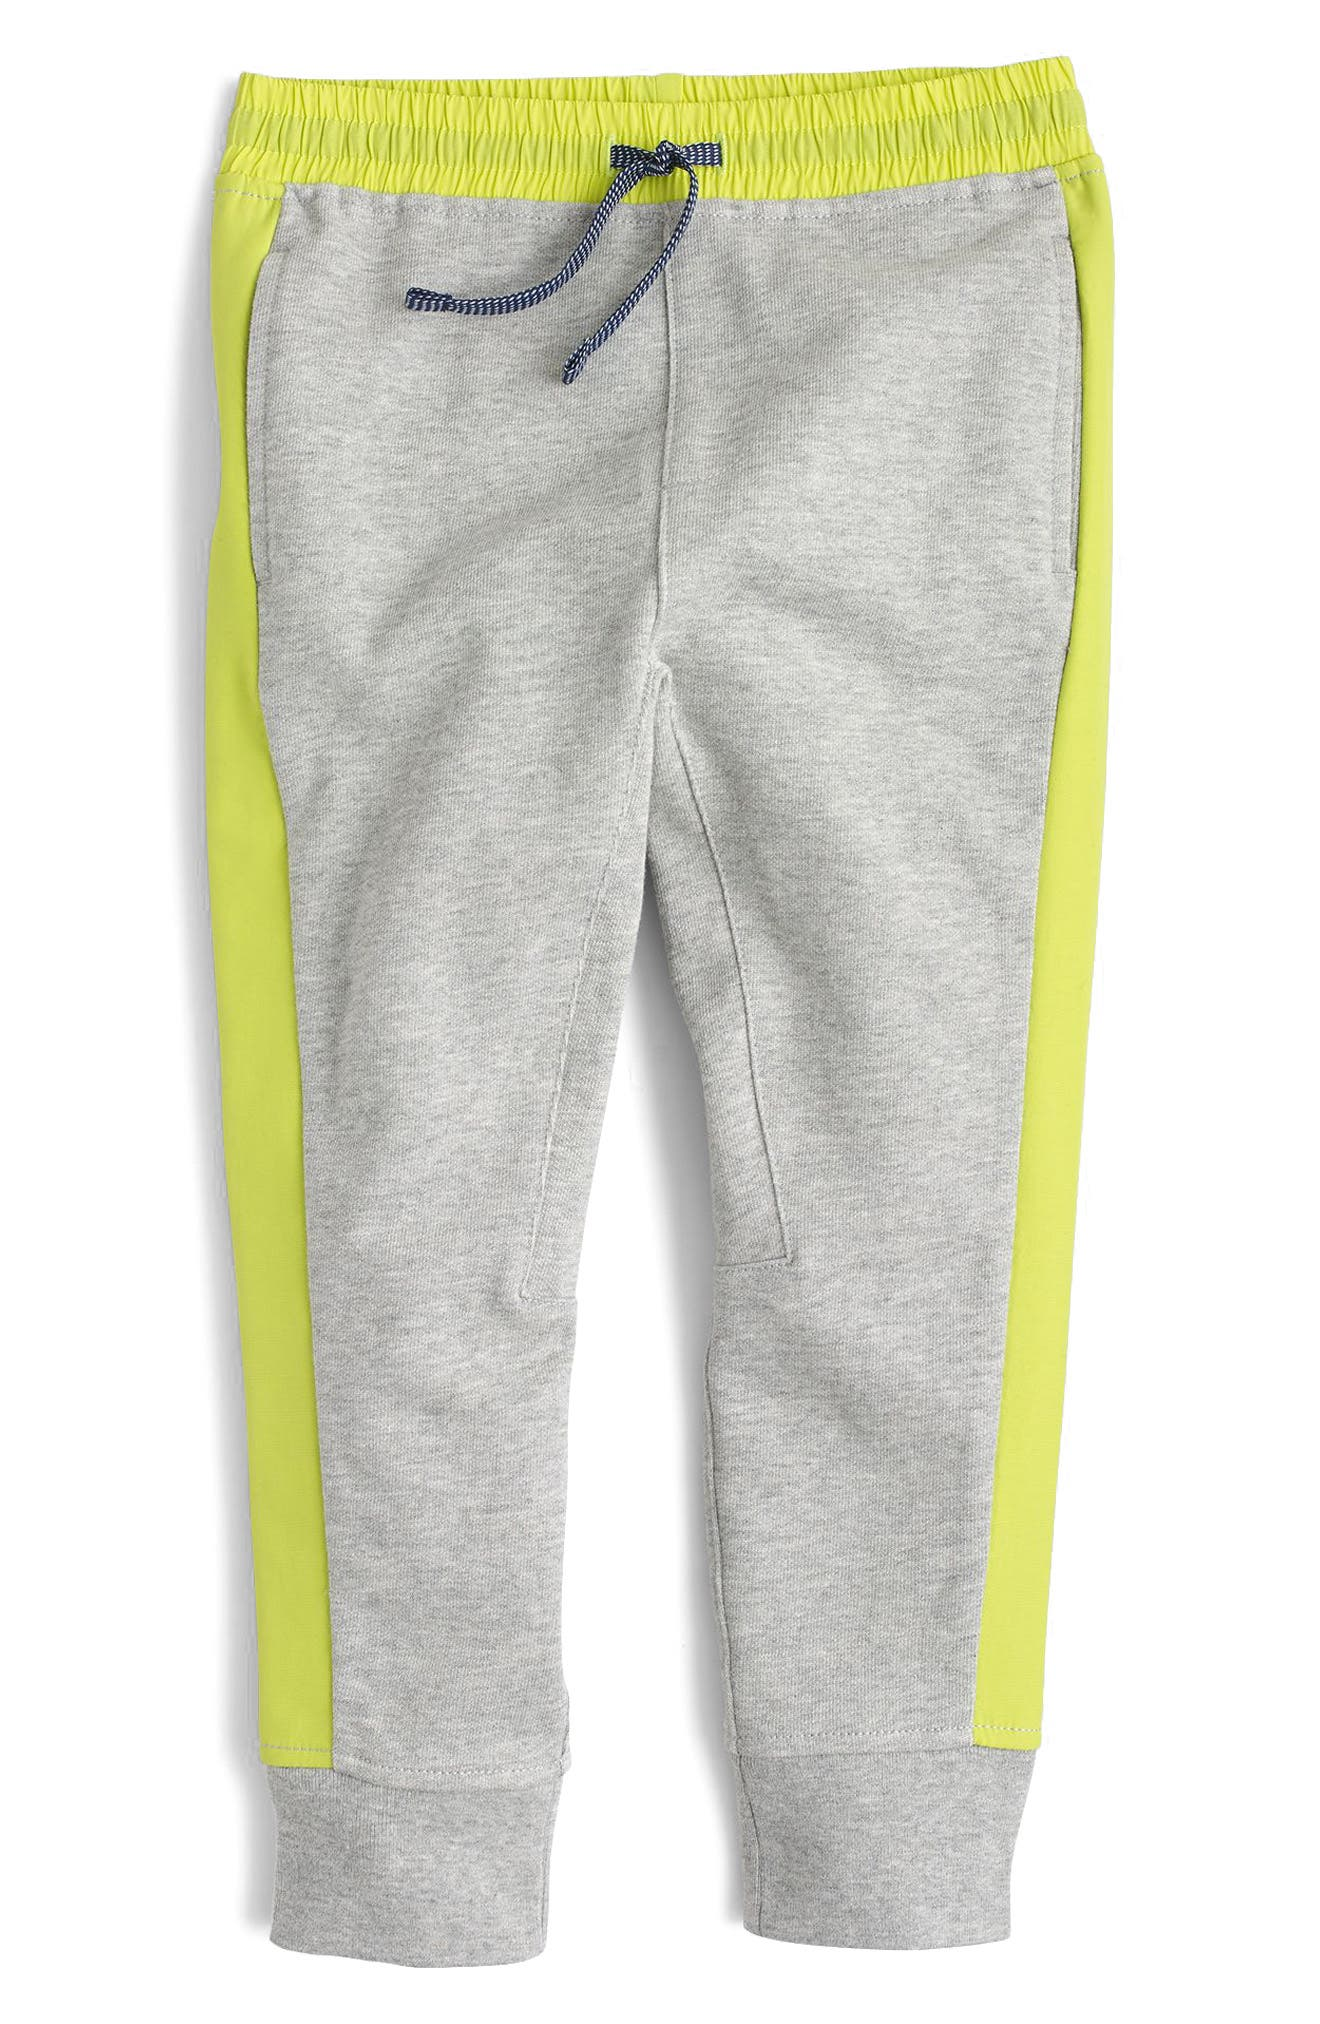 CREWCUTS BY J.CREW Slim Fit Side Stripe Sweatpants, Main, color, 020